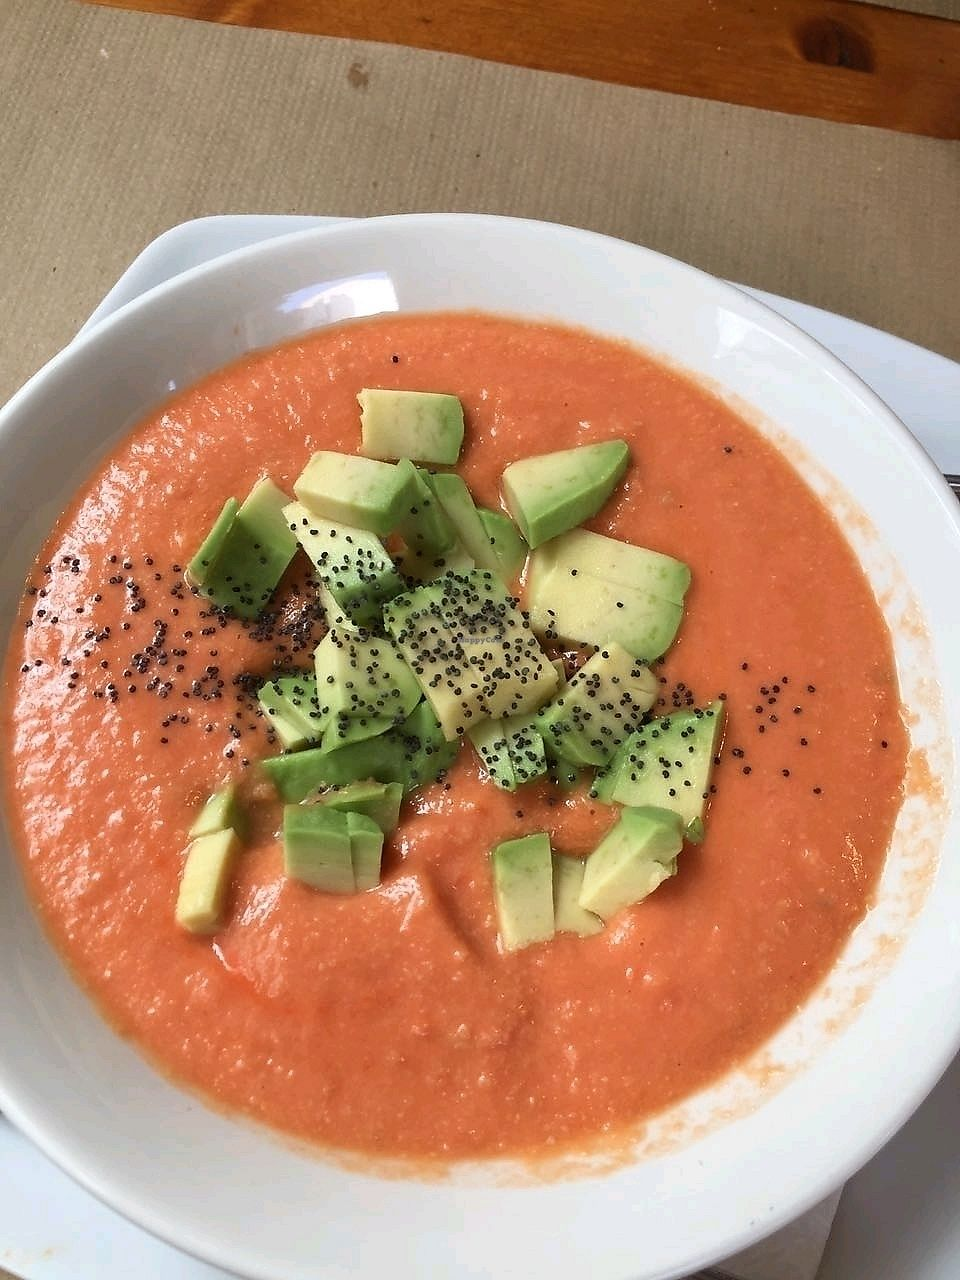 """Photo of Hicuri  by <a href=""""/members/profile/FlokiTheCat"""">FlokiTheCat</a> <br/>Salmorejo with avocado <br/> September 26, 2017  - <a href='/contact/abuse/image/6894/308794'>Report</a>"""